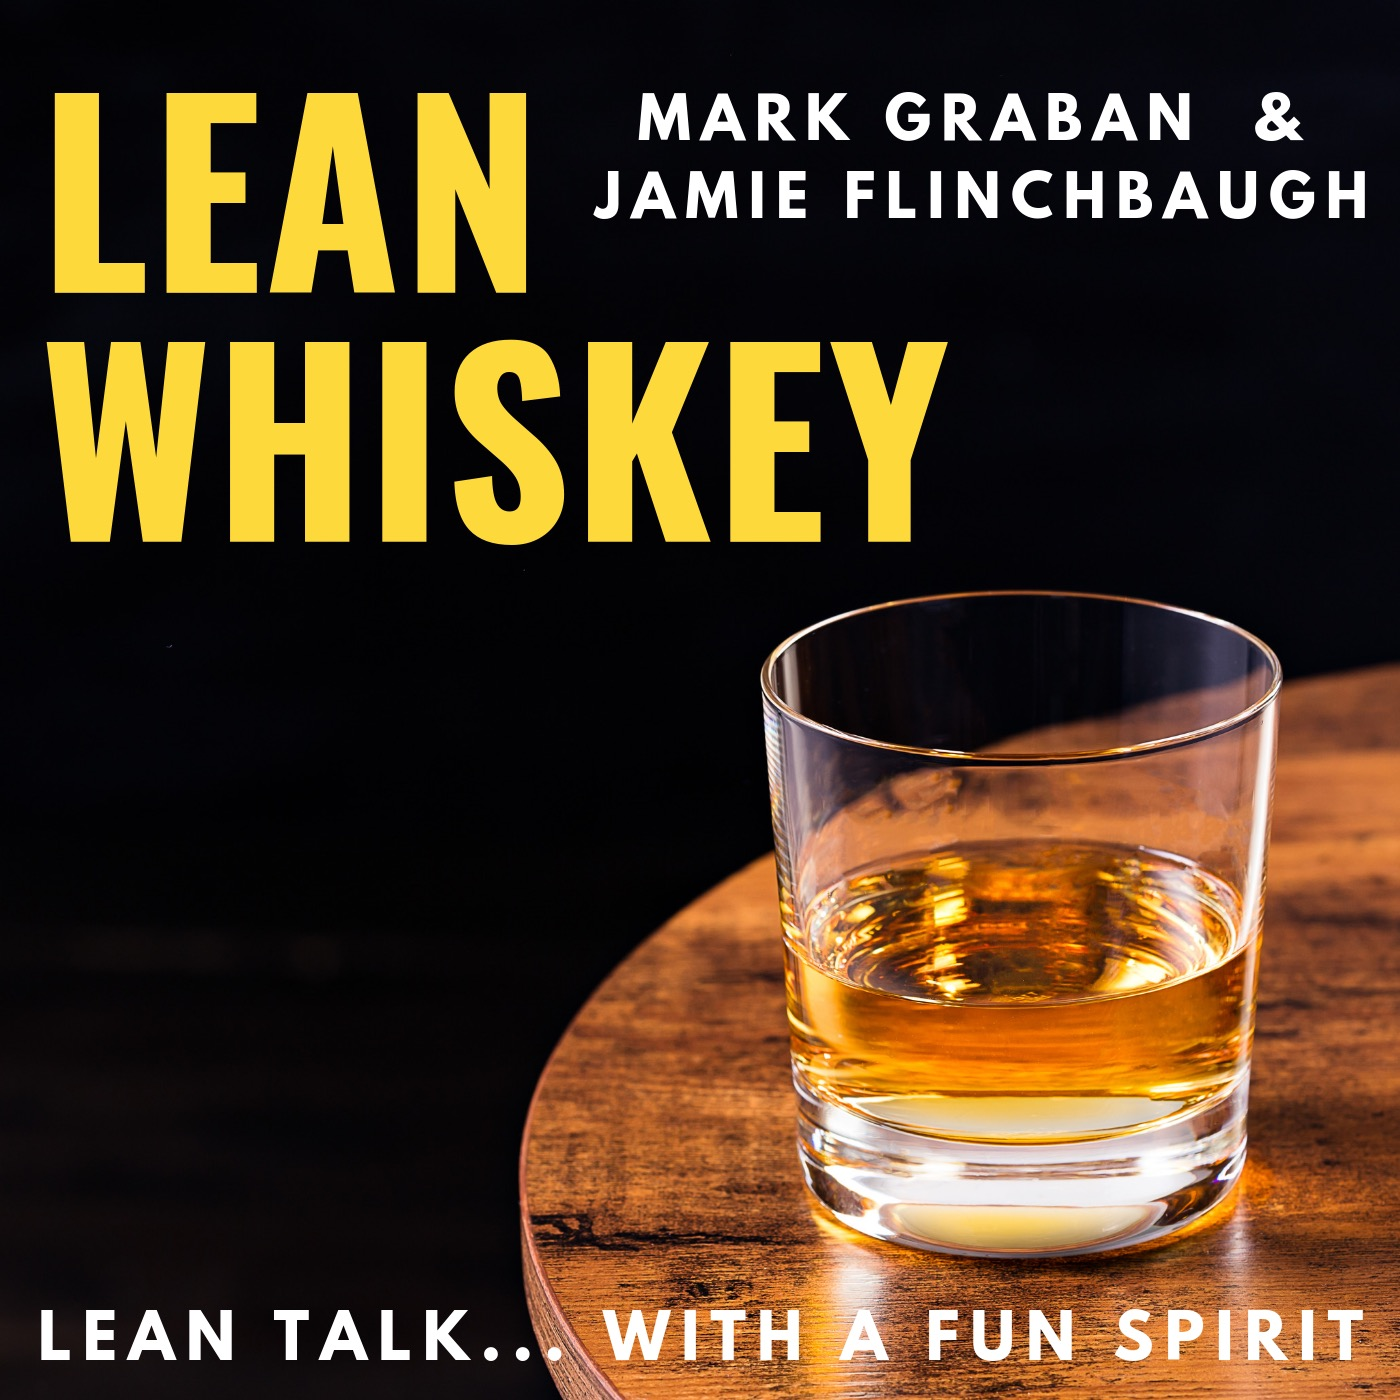 Mark Graban & Cliff Hazell: Amrut, Uncle Nearest, and Some Tweets